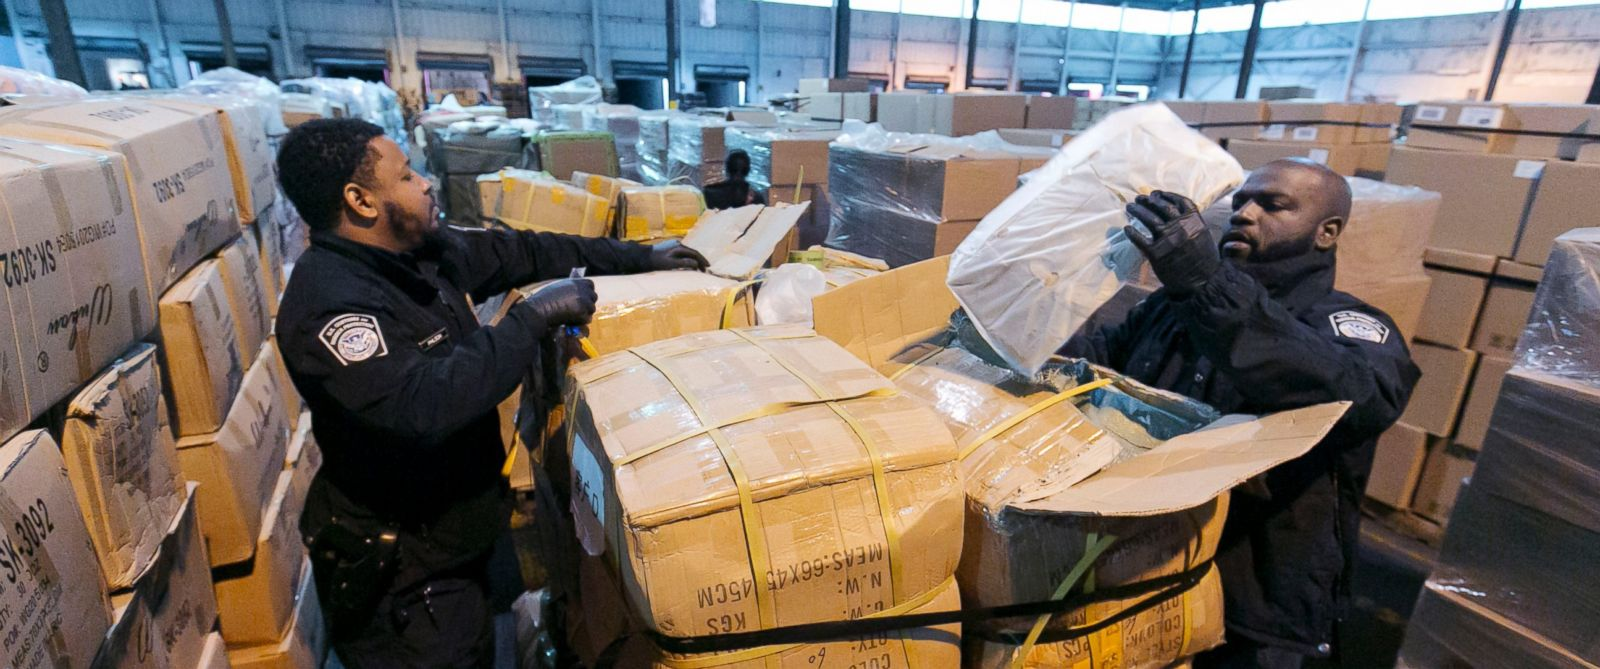 PHOTO: U.S. Customs and Border Protection officers inspect crates of counterfeit bags at a warehouse in Kearney, N.J. Oct. 28, 2015.